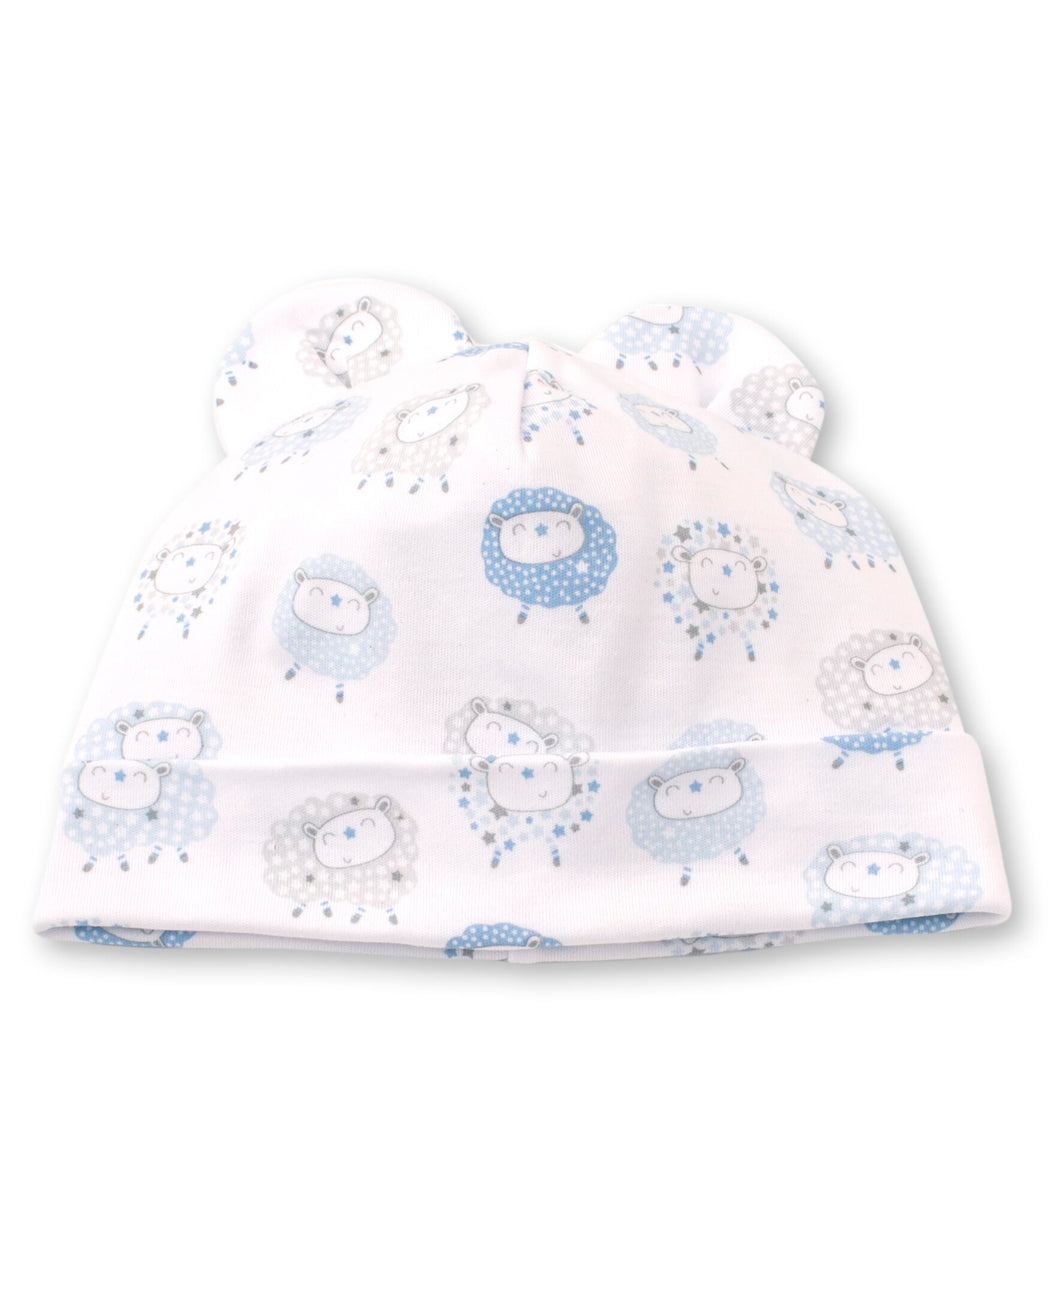 Shabby Sheep Hat - Light Blue Print